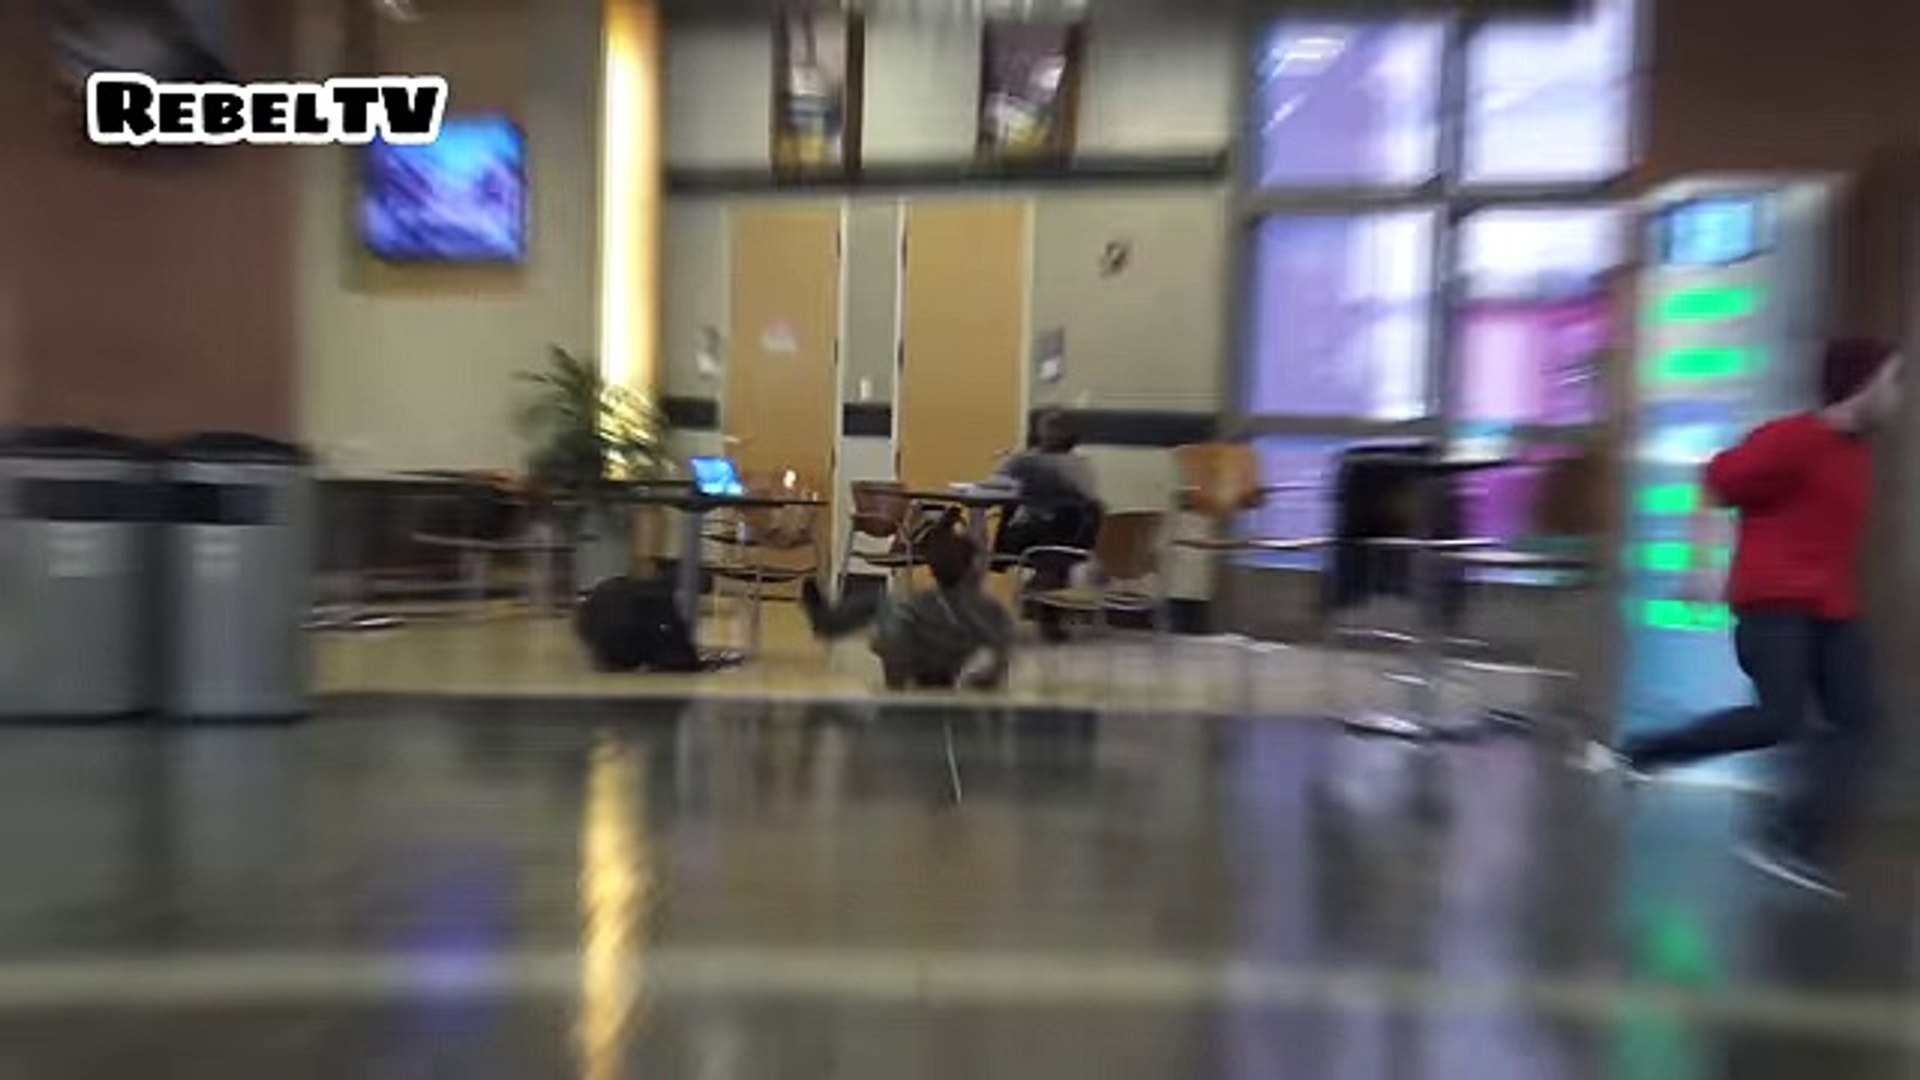 Chair pulling prank New full of fun very funny video caught on camera